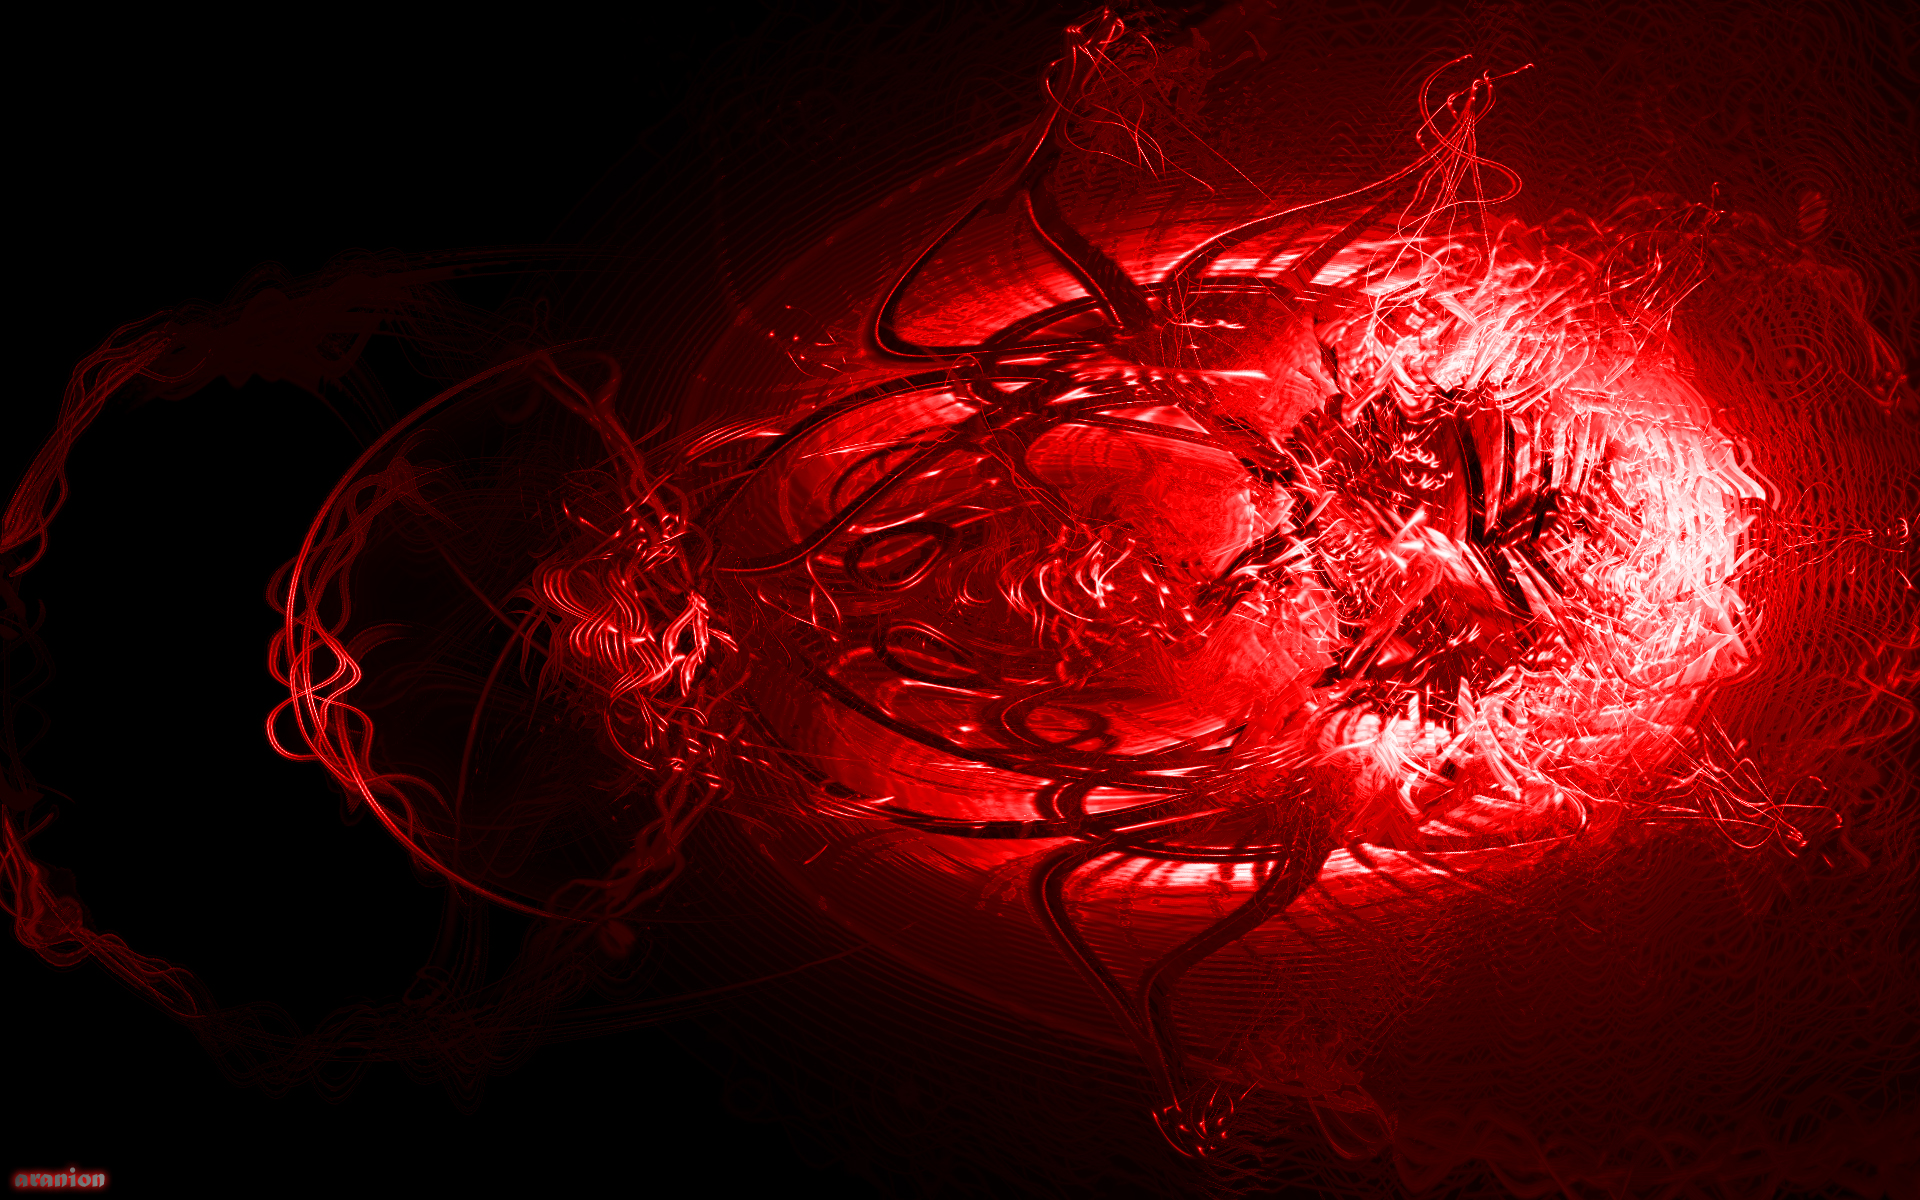 Abstract Wallpaper Red by azuma1337 on DeviantArt